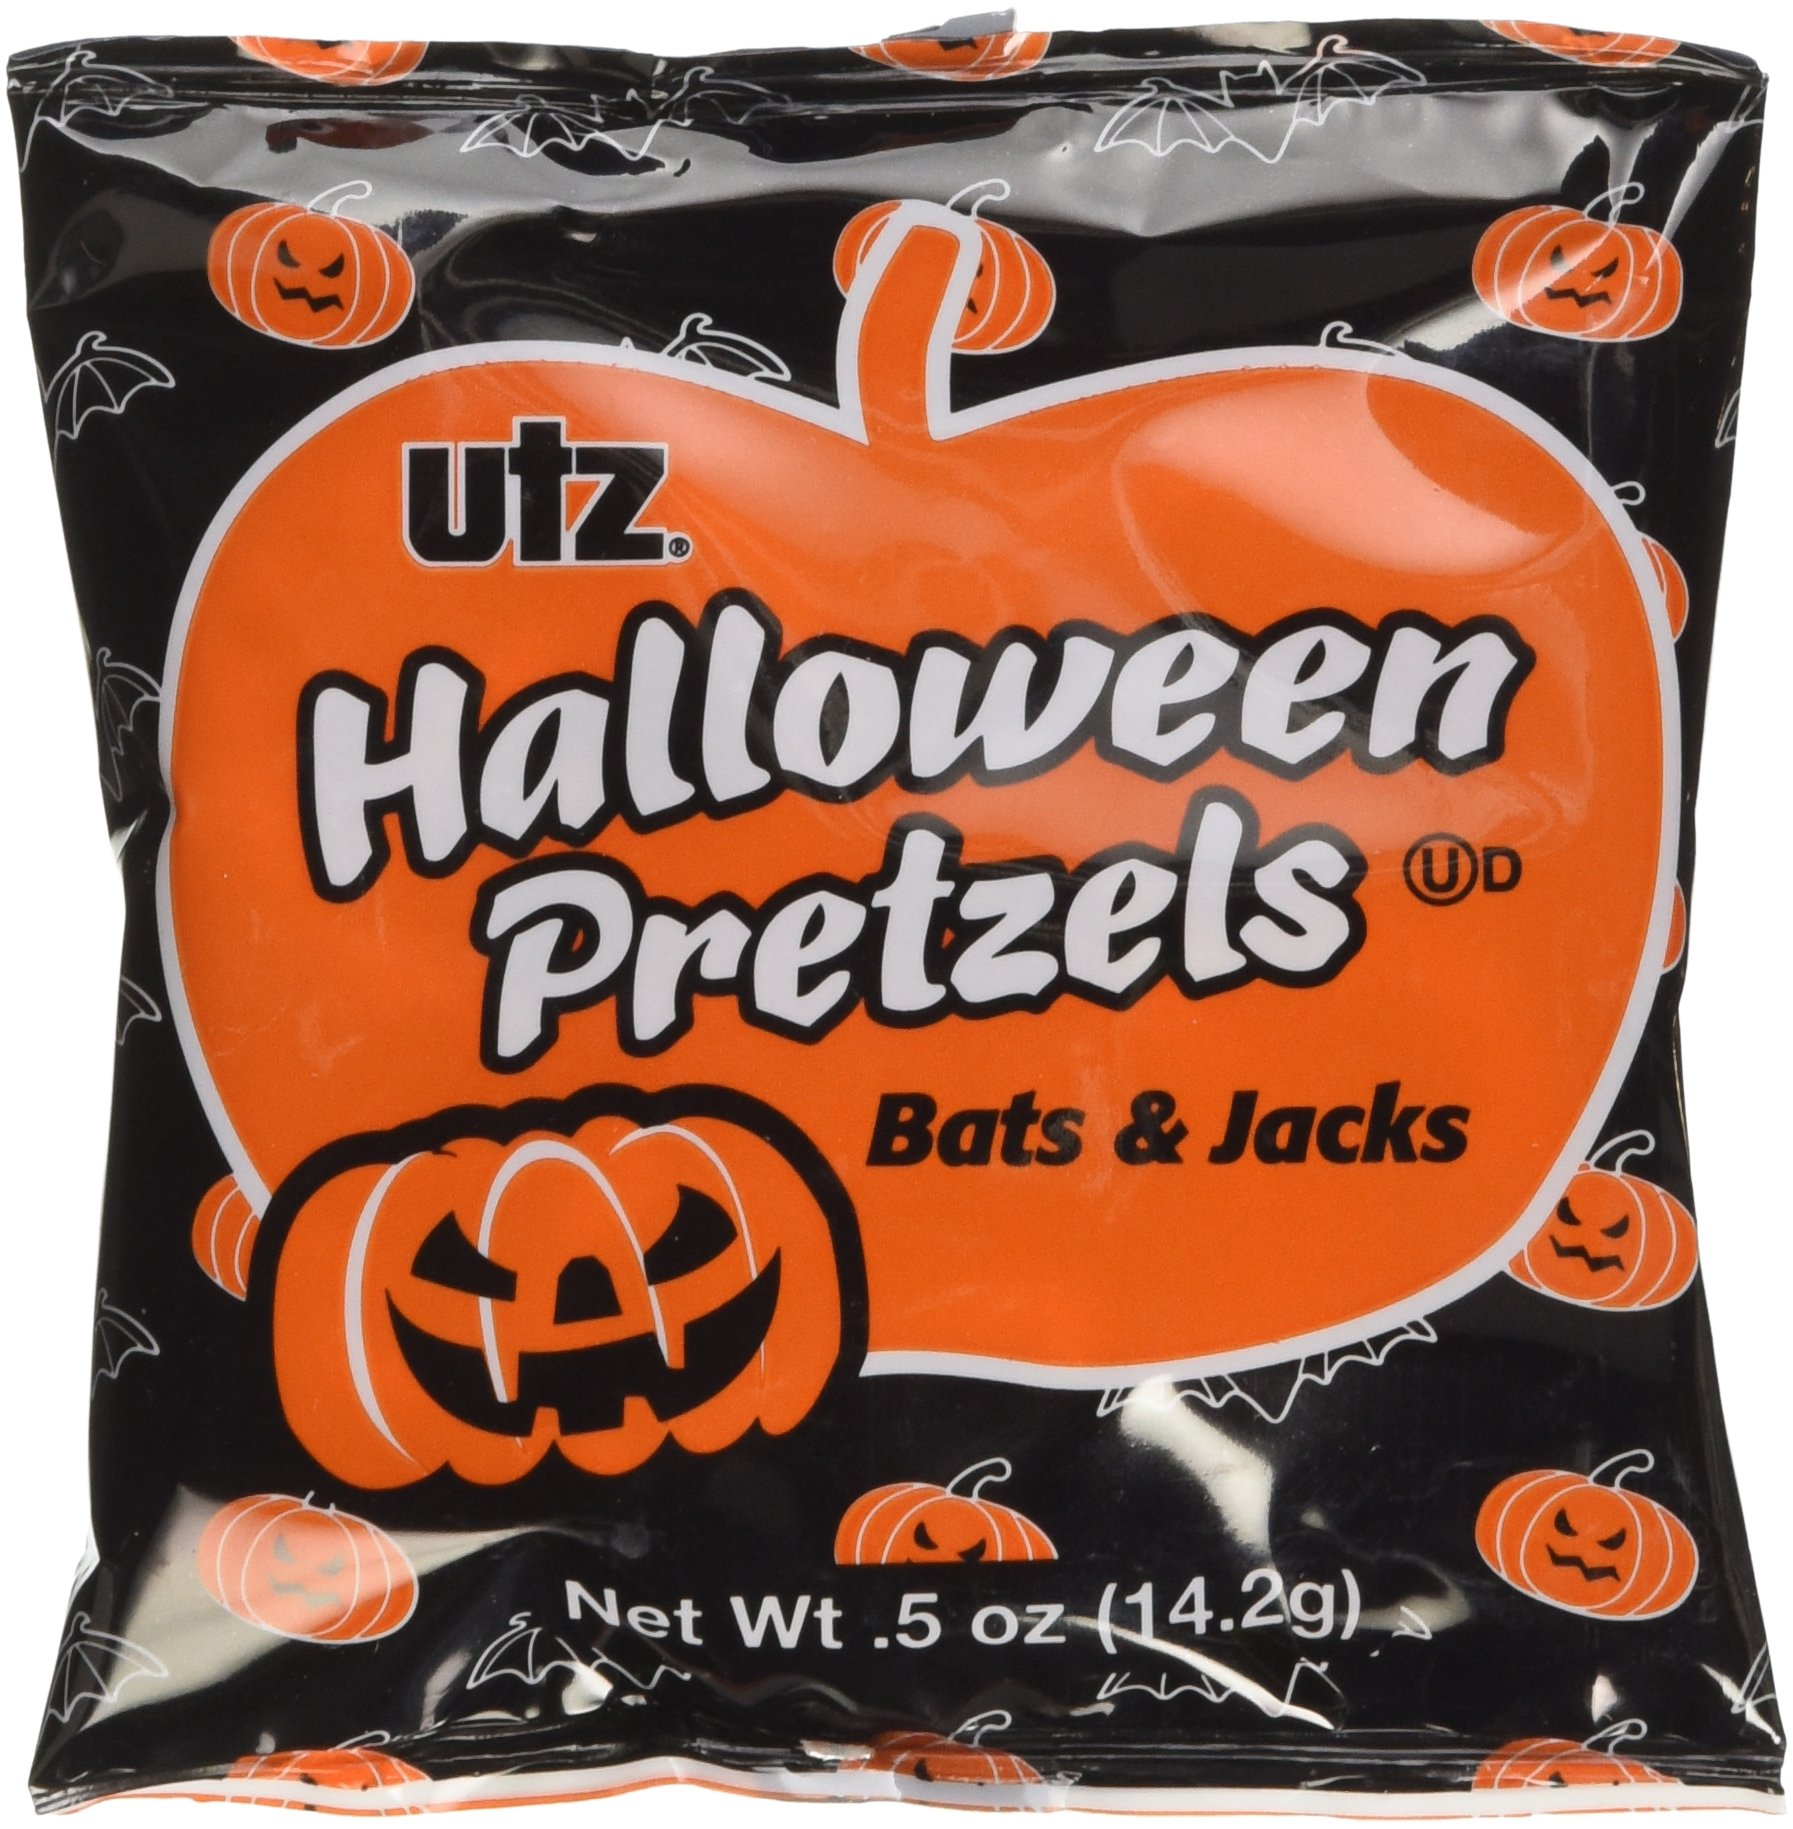 Utz Halloween Bat & Pumpkin Shaped Treats Pretzel, Box of 40 individual bags by UTZ